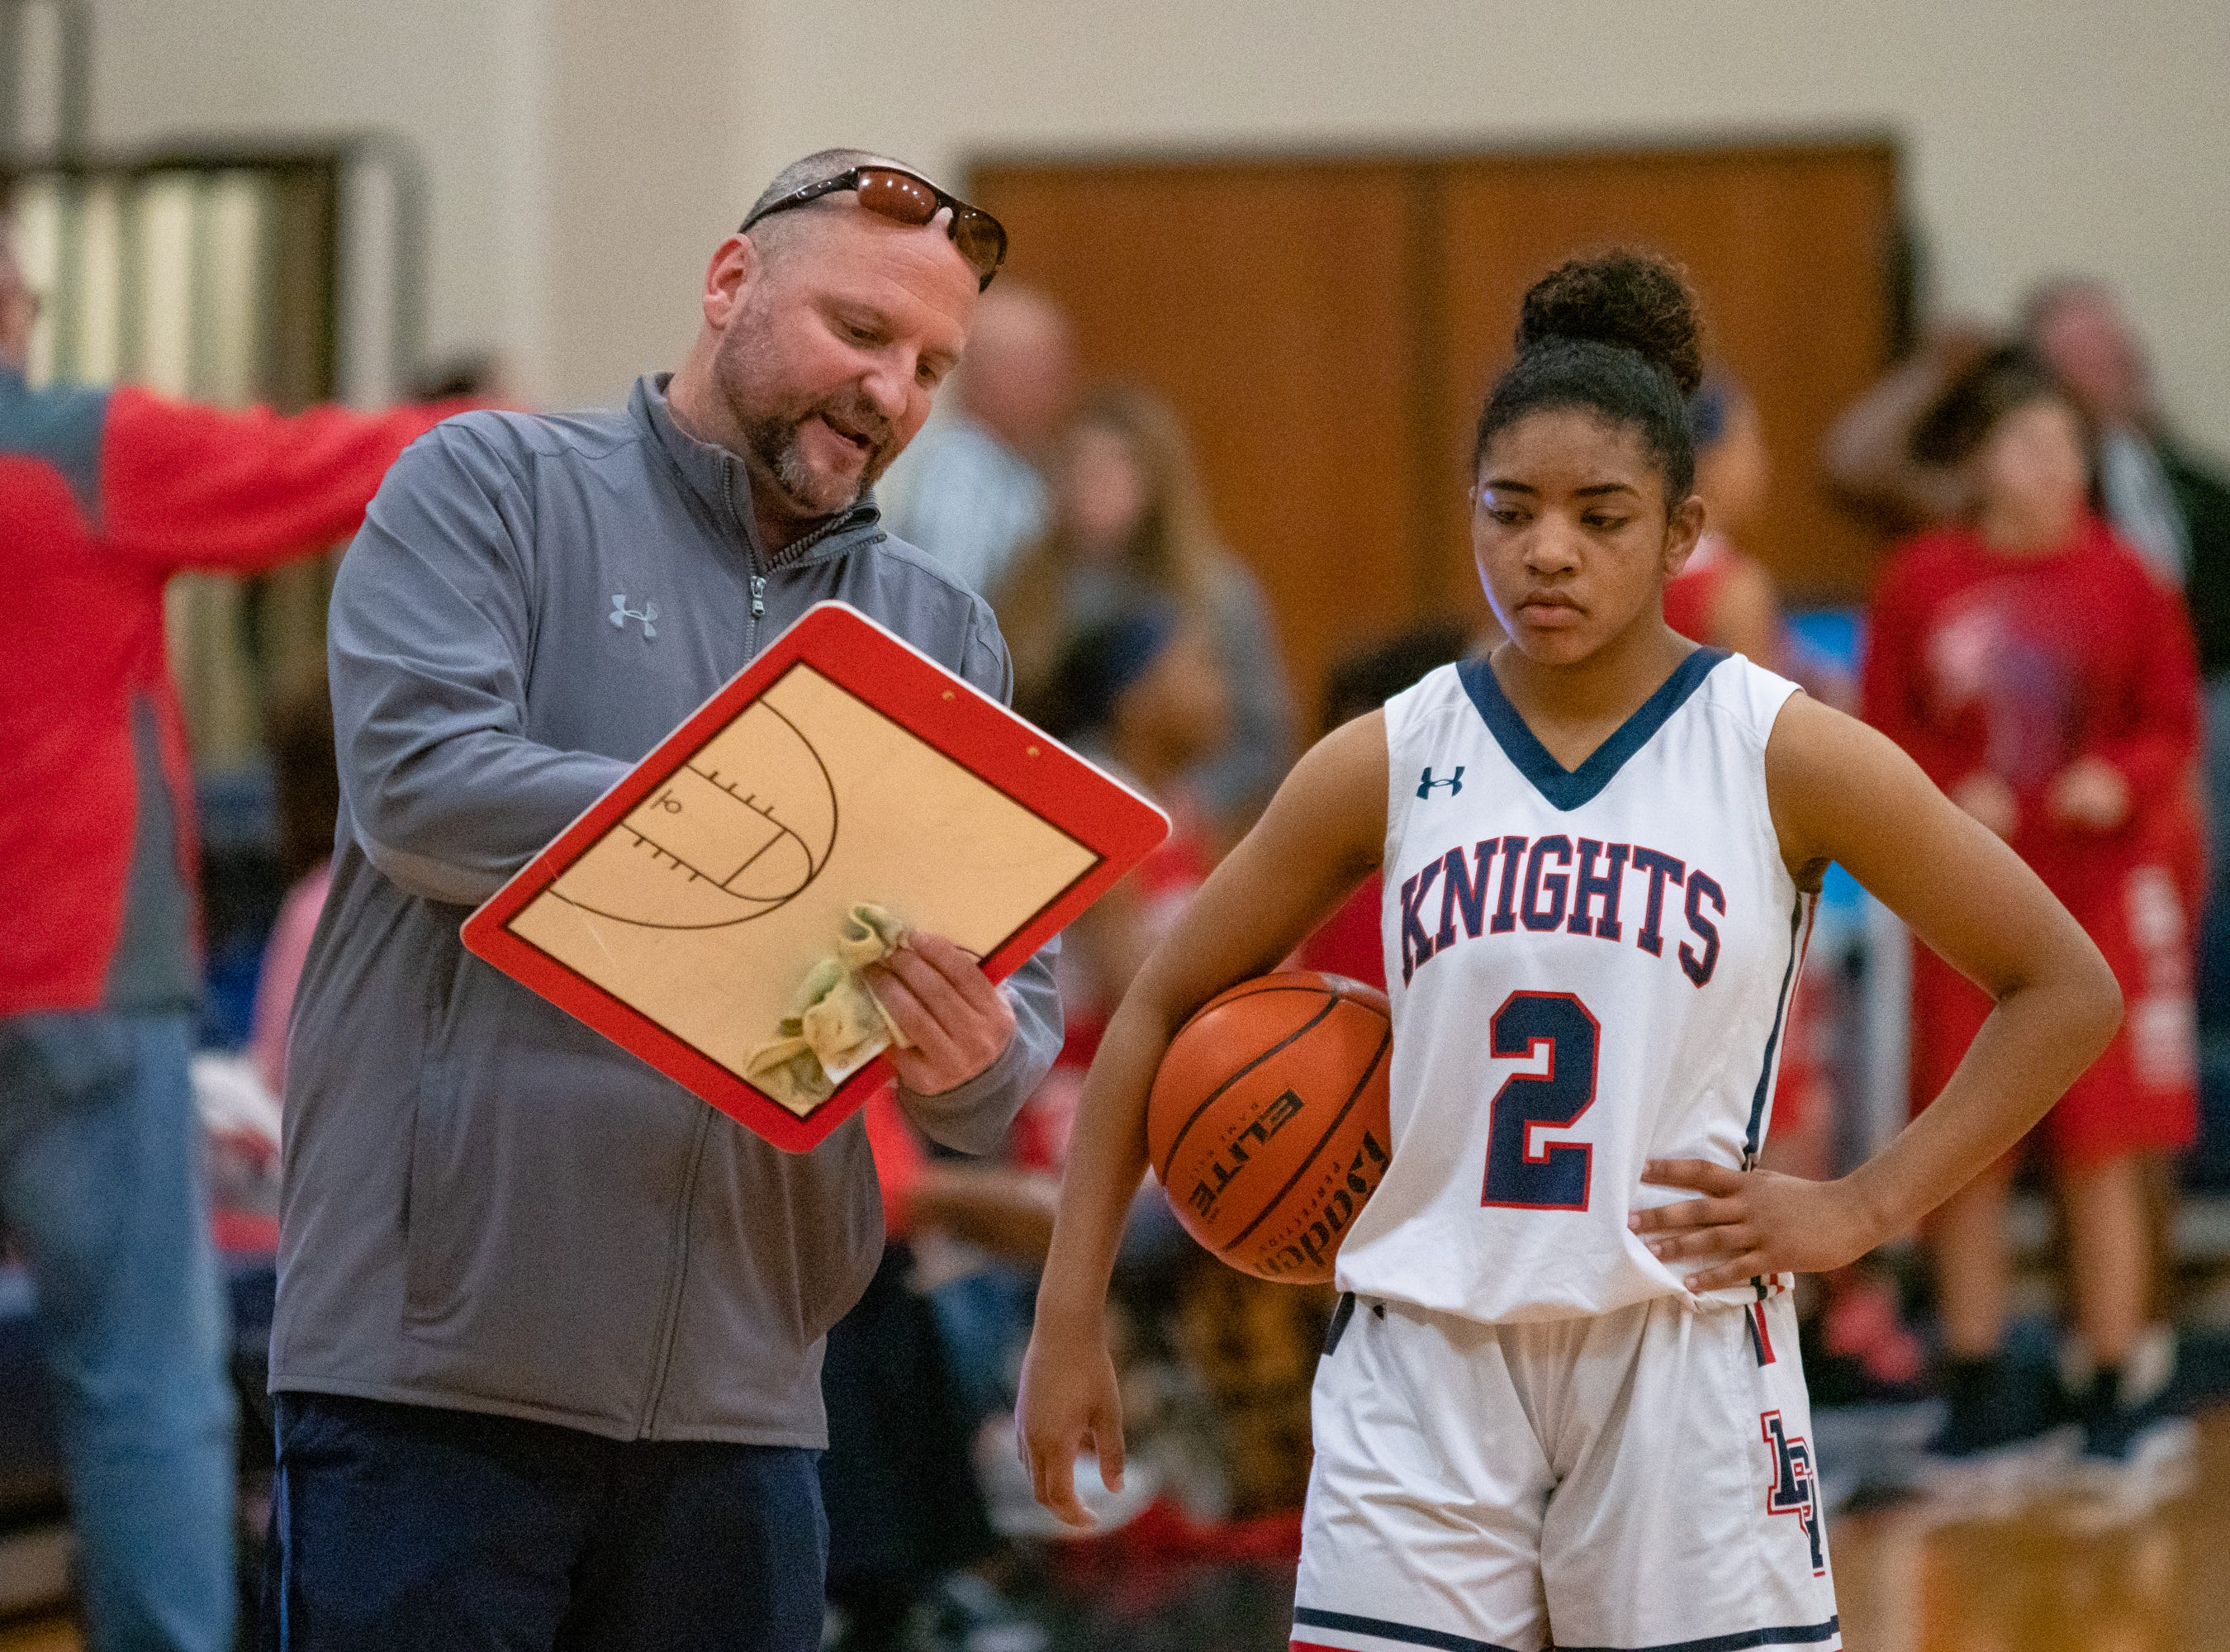 Lafayette Christian head coach Devin Lantier talks to Zoe Wiltz during half-time as the LCA Knights take on the Central Catholic Eagles at home on Thursday, Feb. 21, 2019.